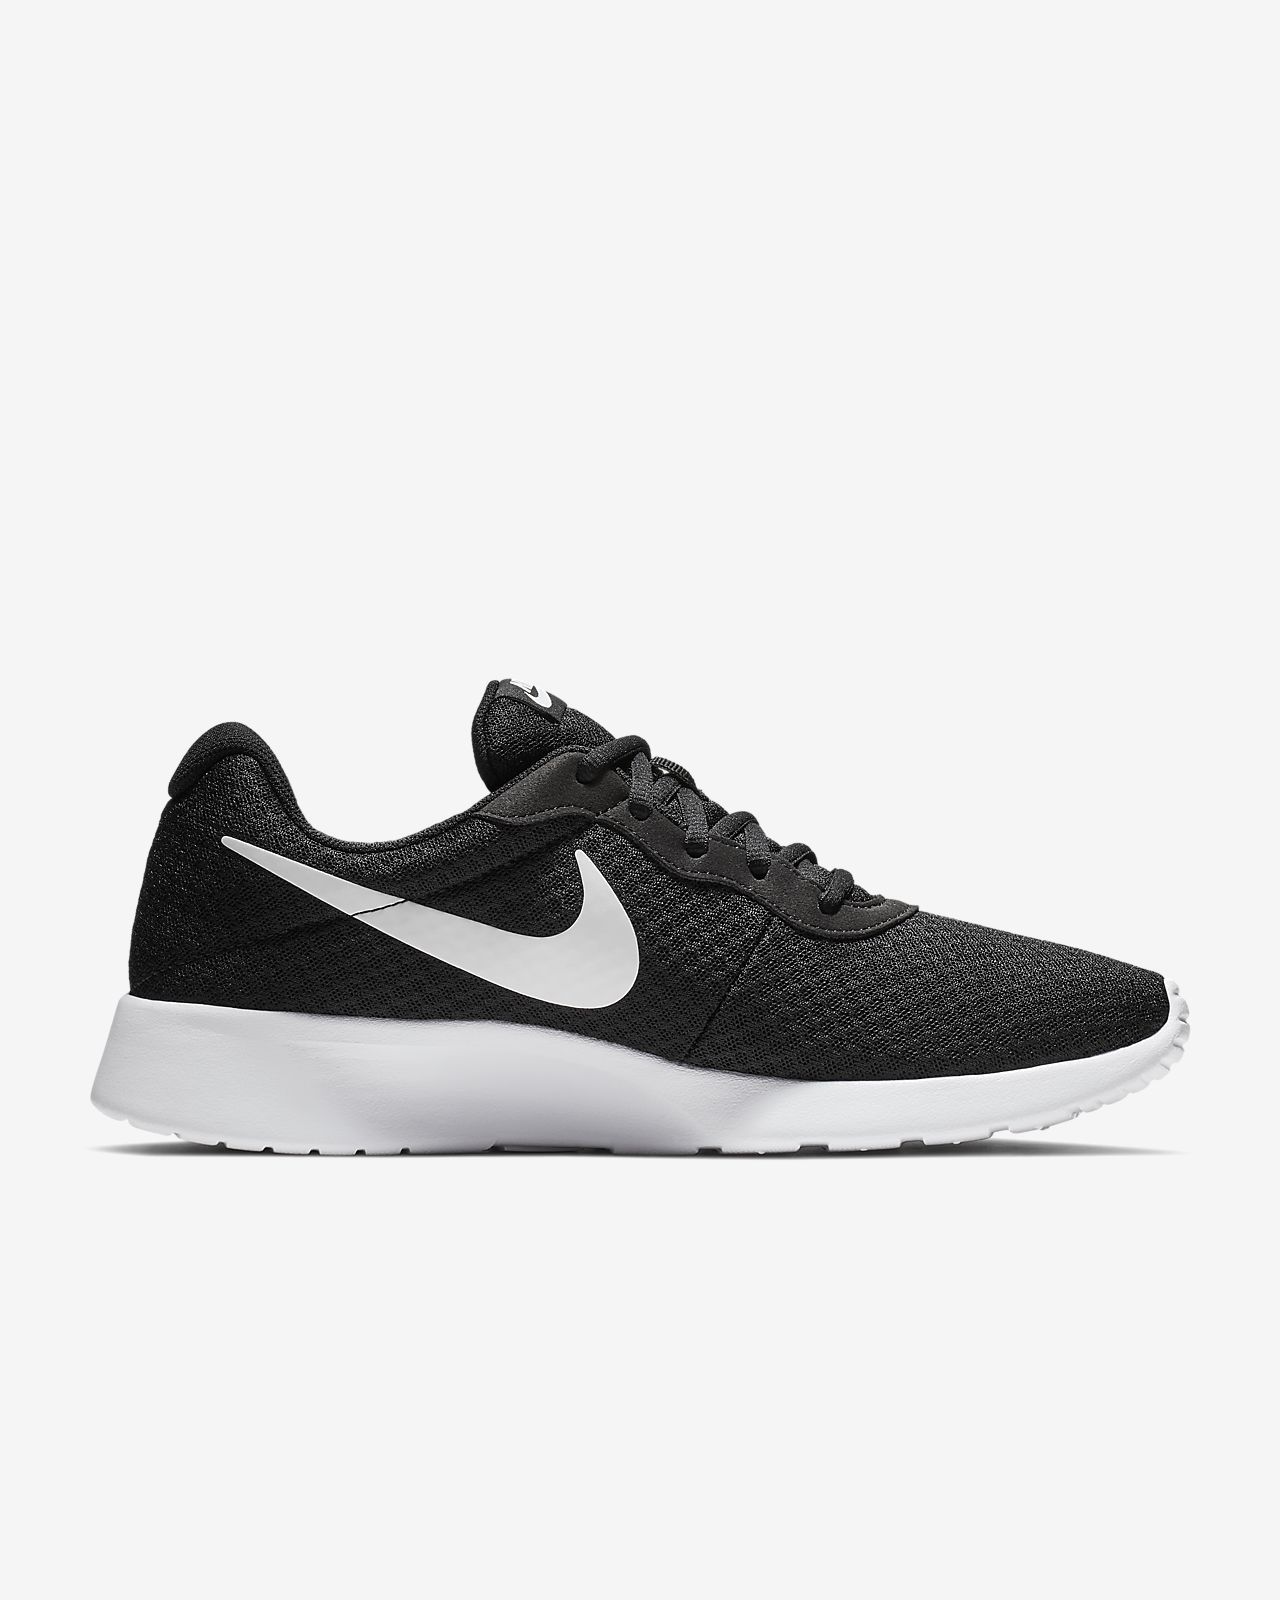 promo code ddfea f69be Low Resolution Nike Tanjun Mens Shoe Nike Tanjun Mens Shoe